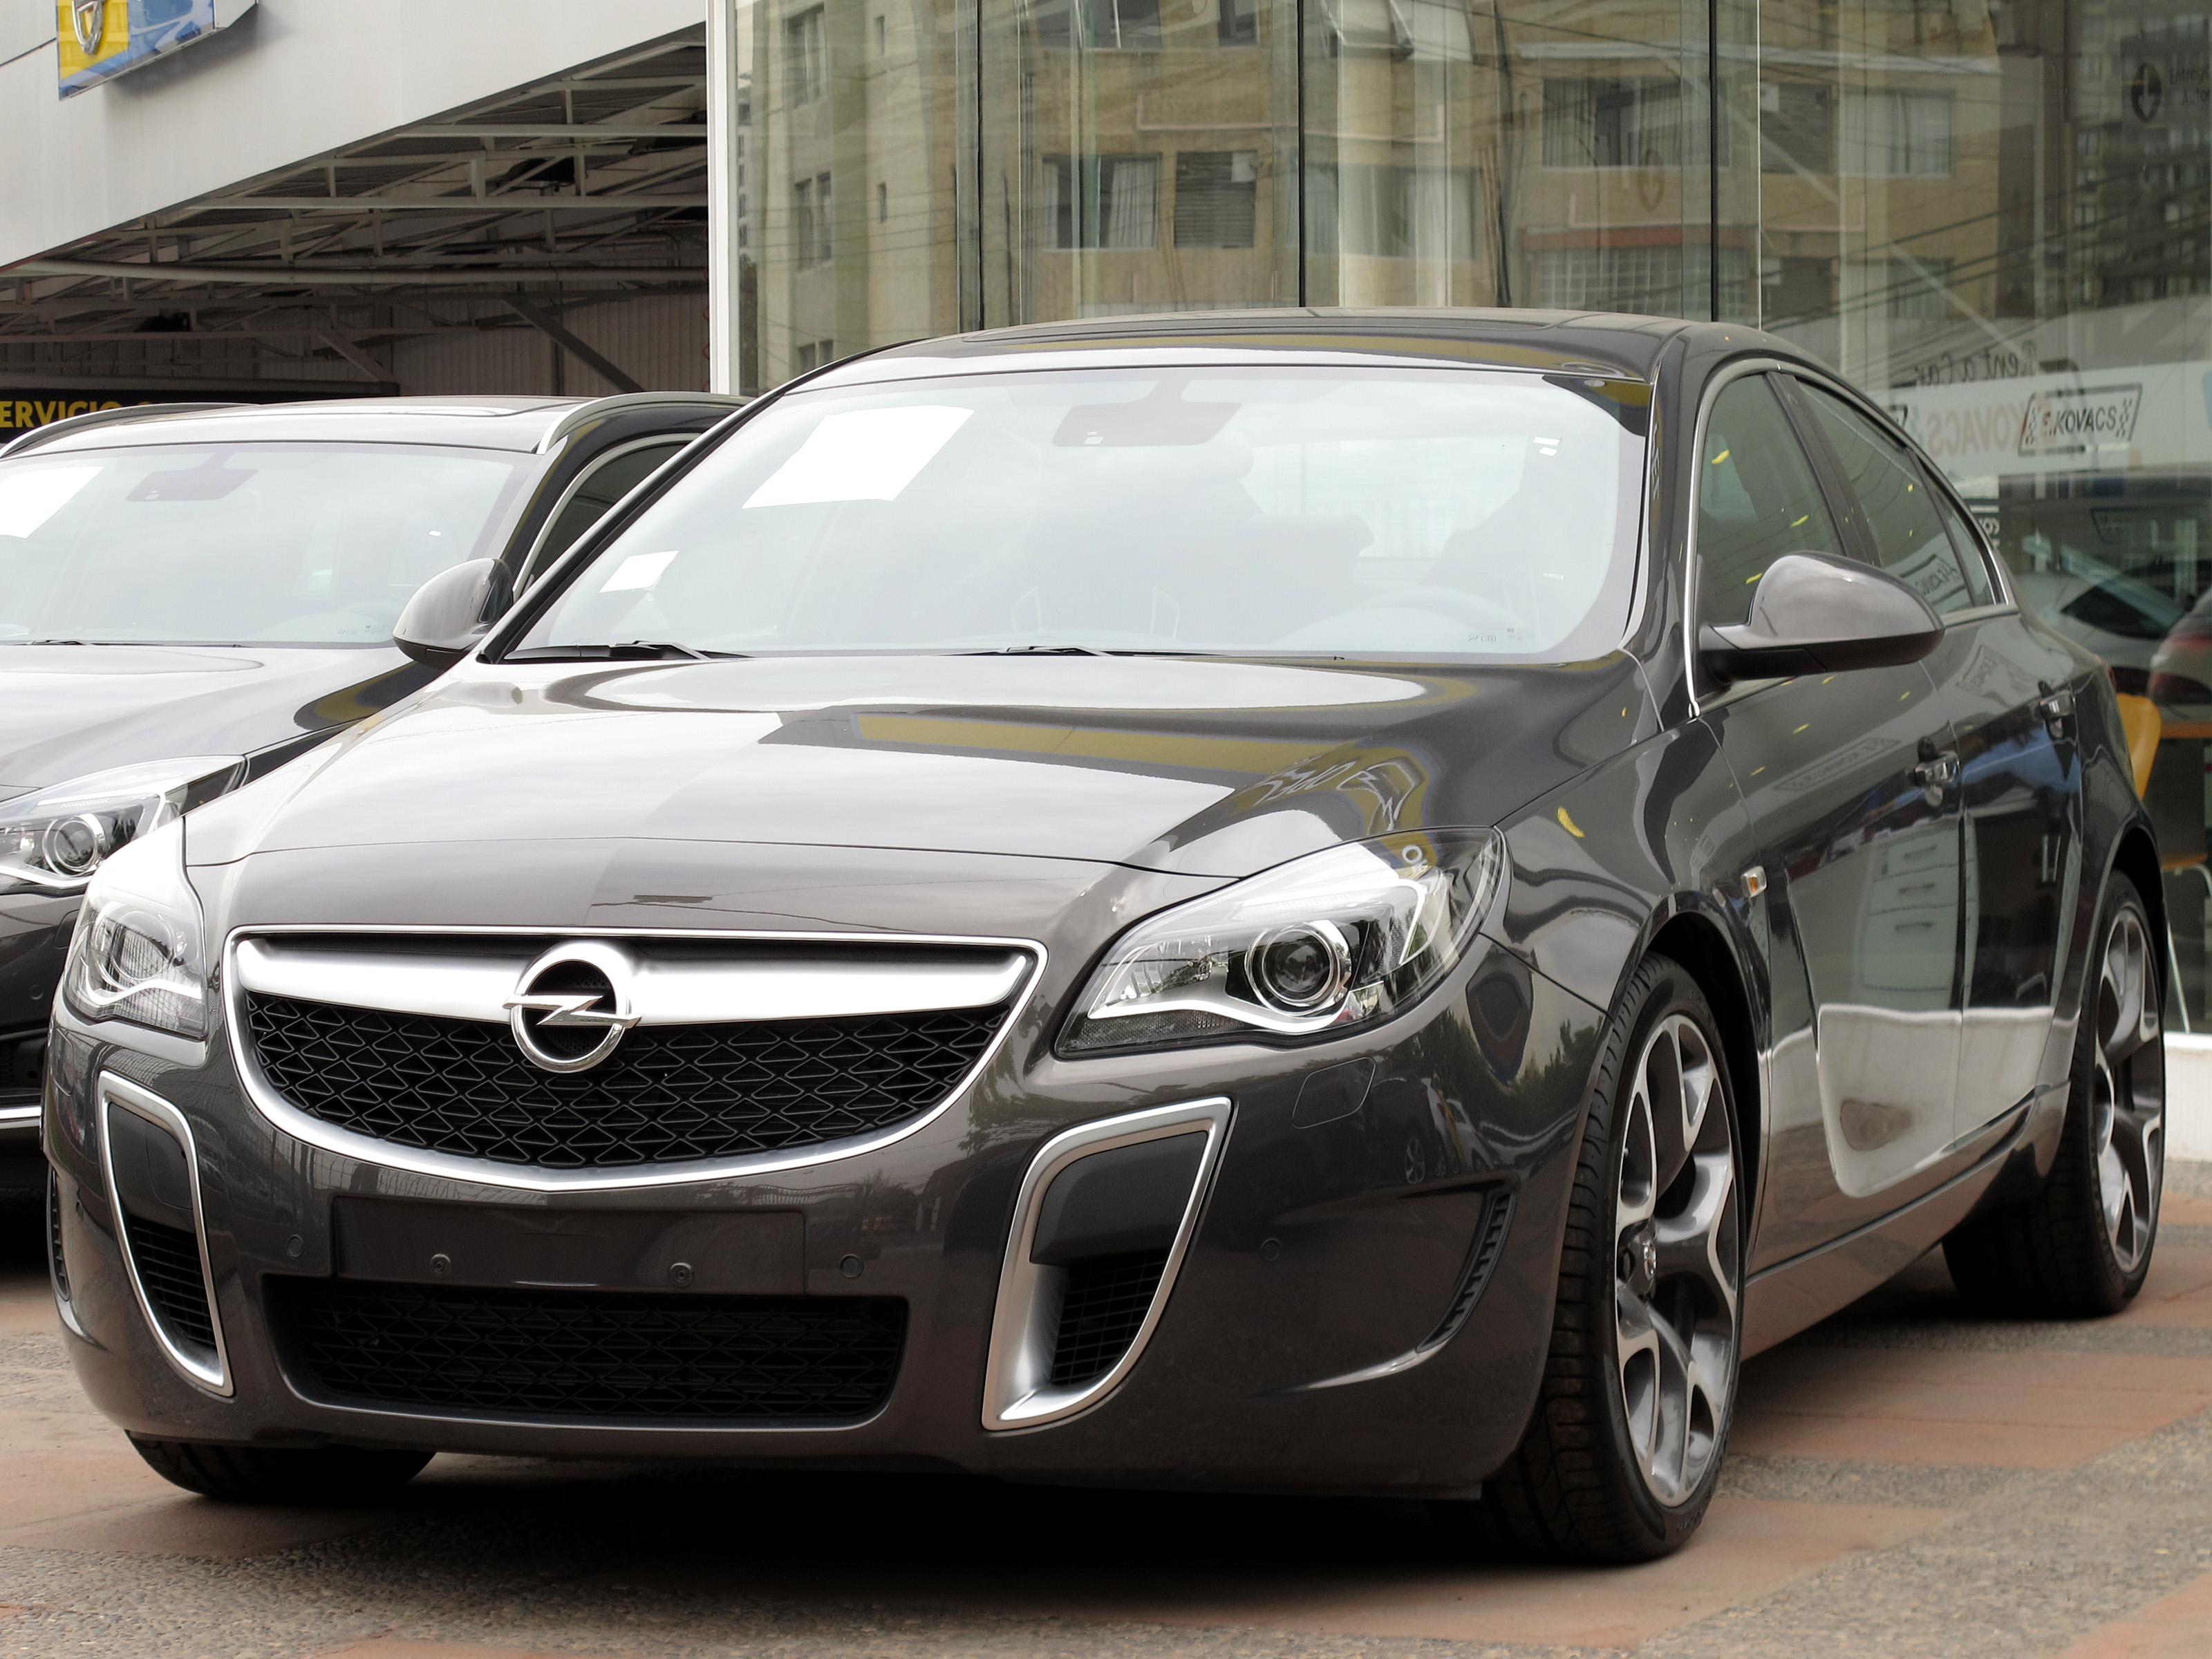 Scrapping a Vauxhall Insignia